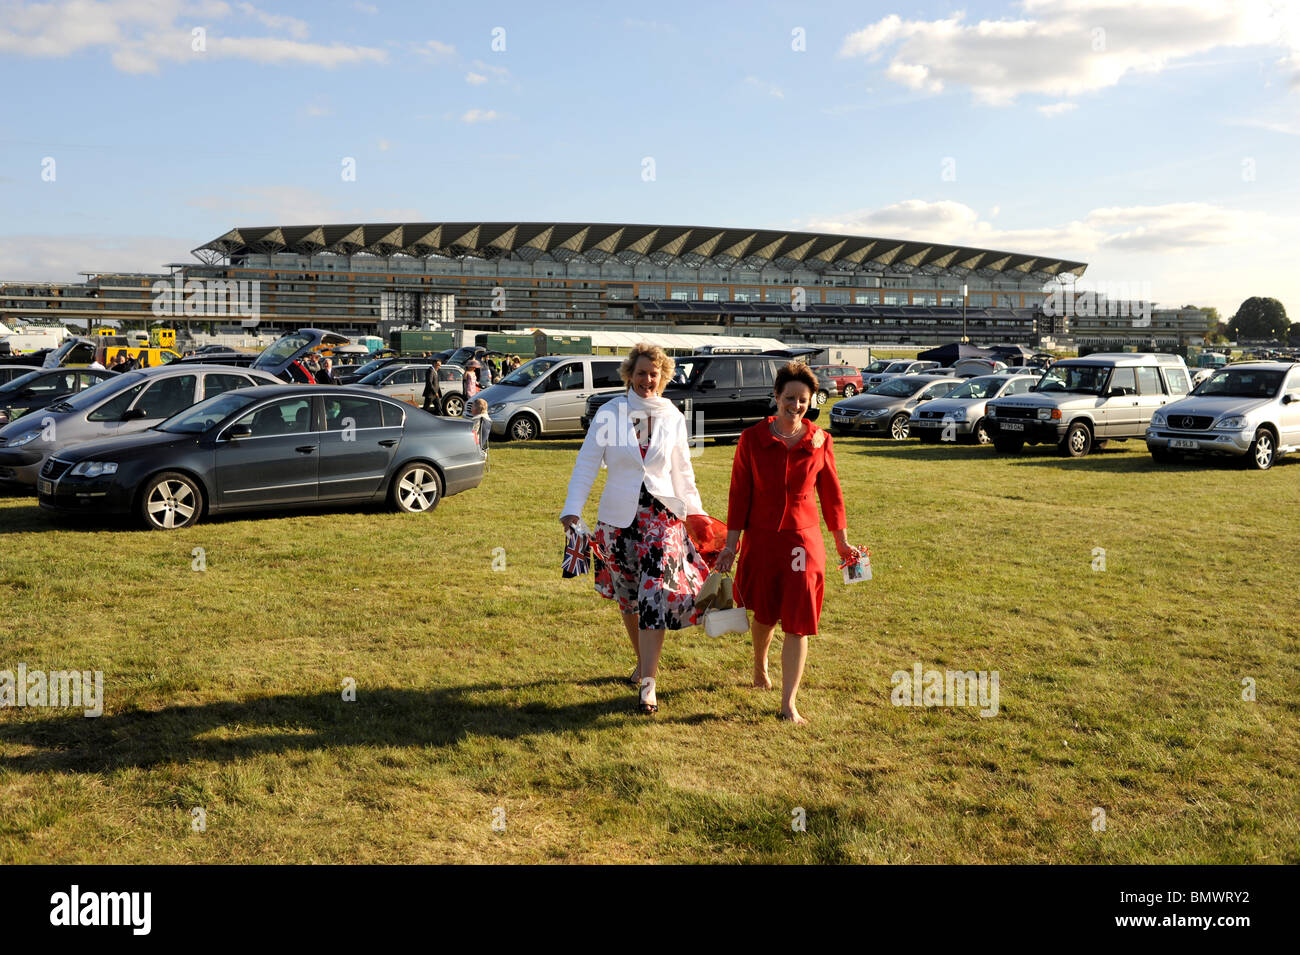 Royal Ascot Berkshire - Female Racegoers walking across the heathland car park in front of Grandstand after days - Stock Image